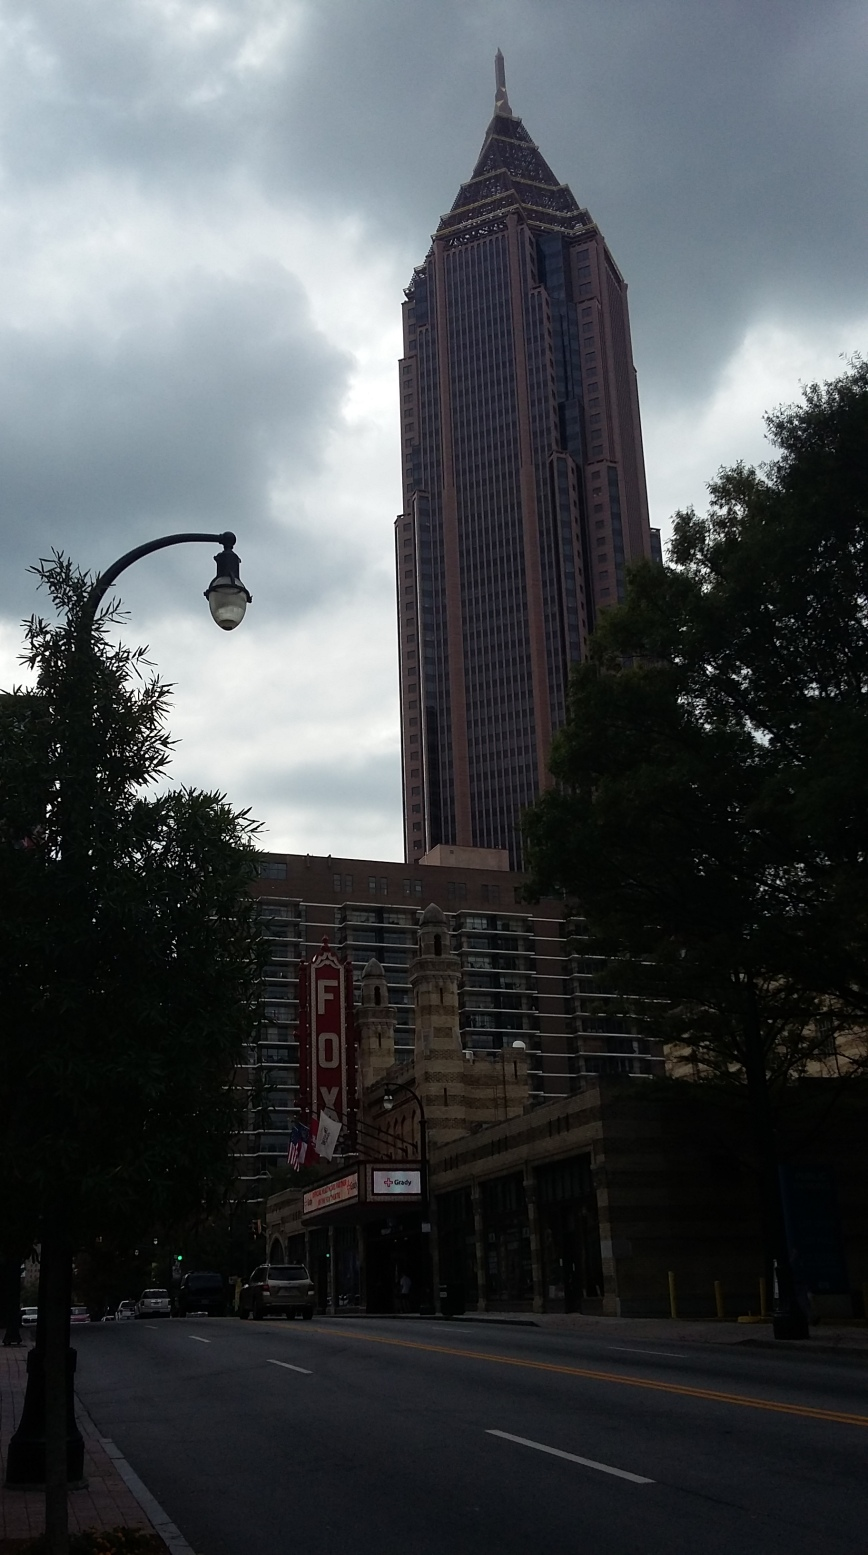 Fox Theatre and Emory University Hospital, Atlanta - Emma's Picture Postcards